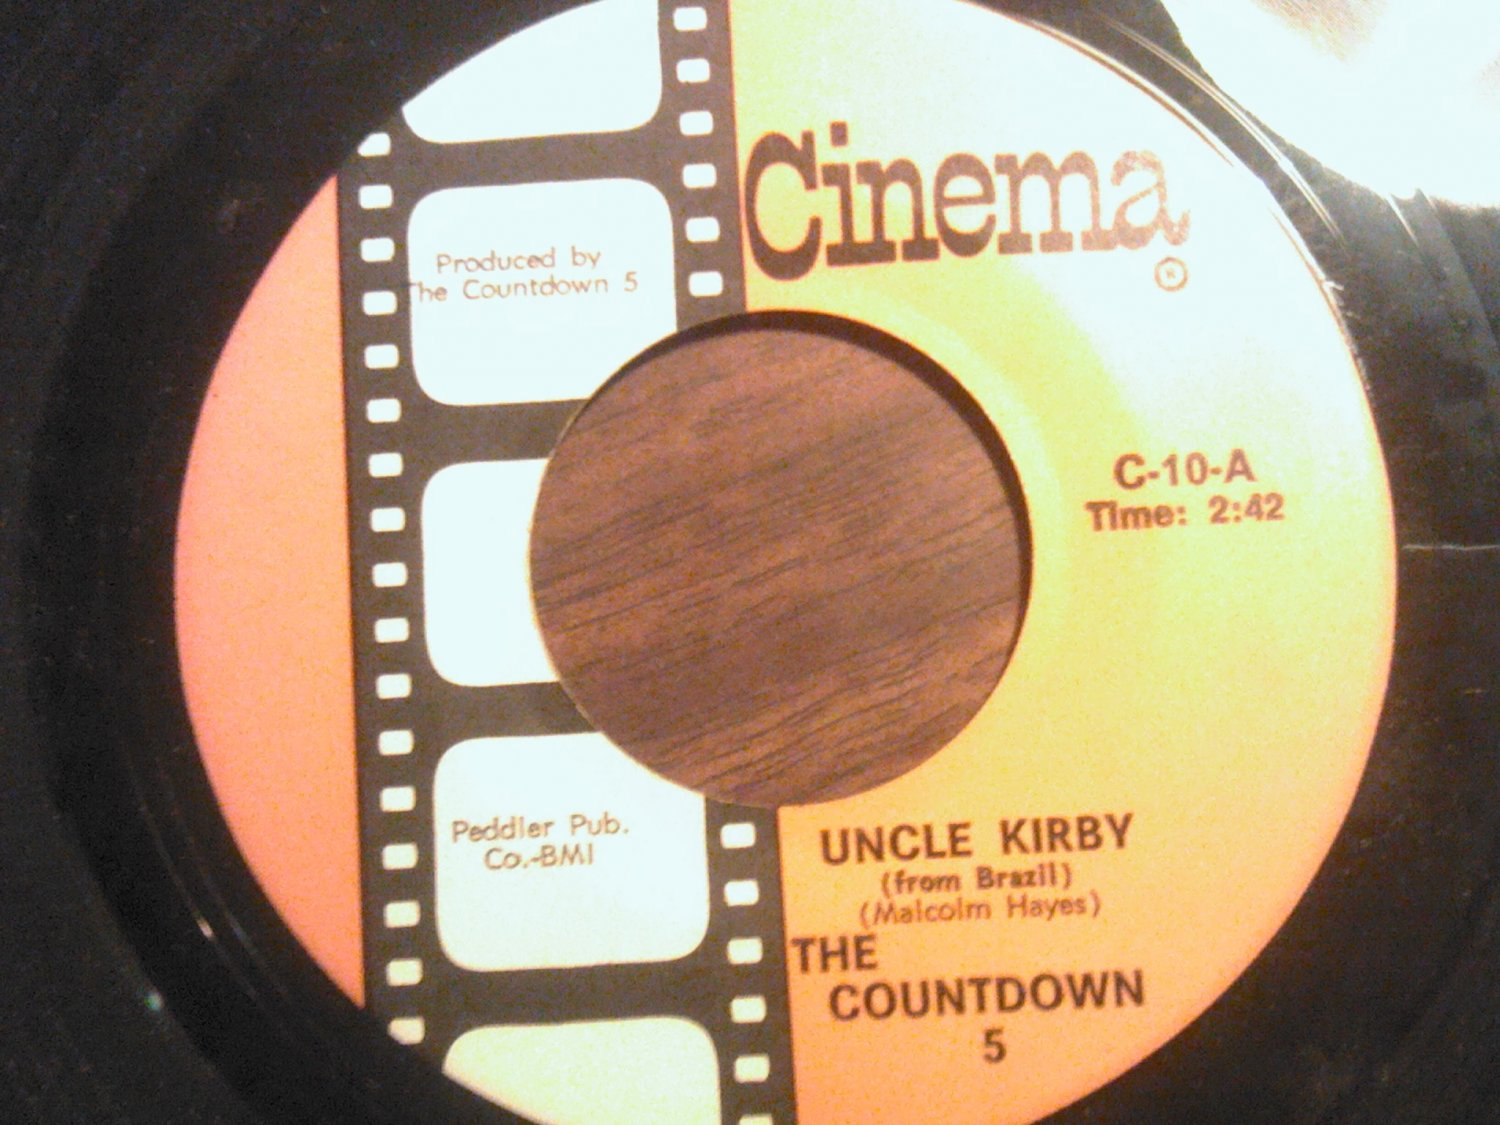 45 THE COUNTDOWN 5 Uncle Kirby b/w Speculation five vintage vinyl record